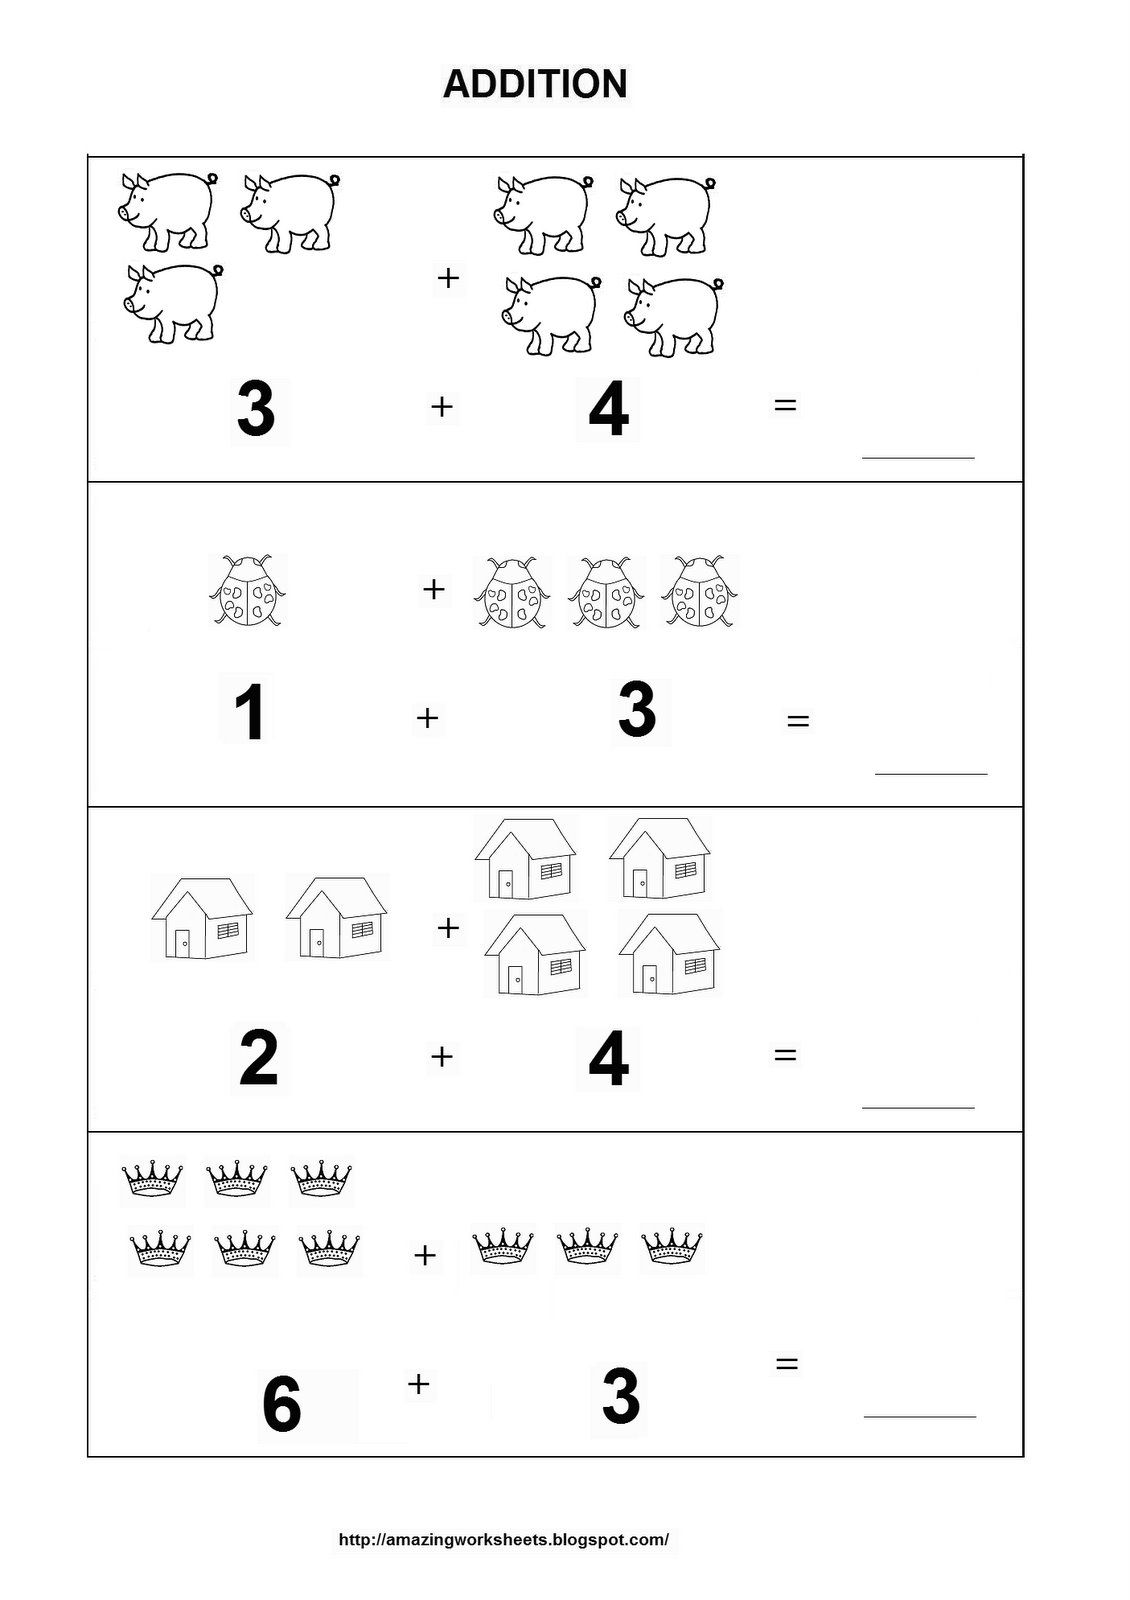 Worksheet Preschool Addition free printable kindergarten addition worksheets brandonbrice us and on pinterest pinterest